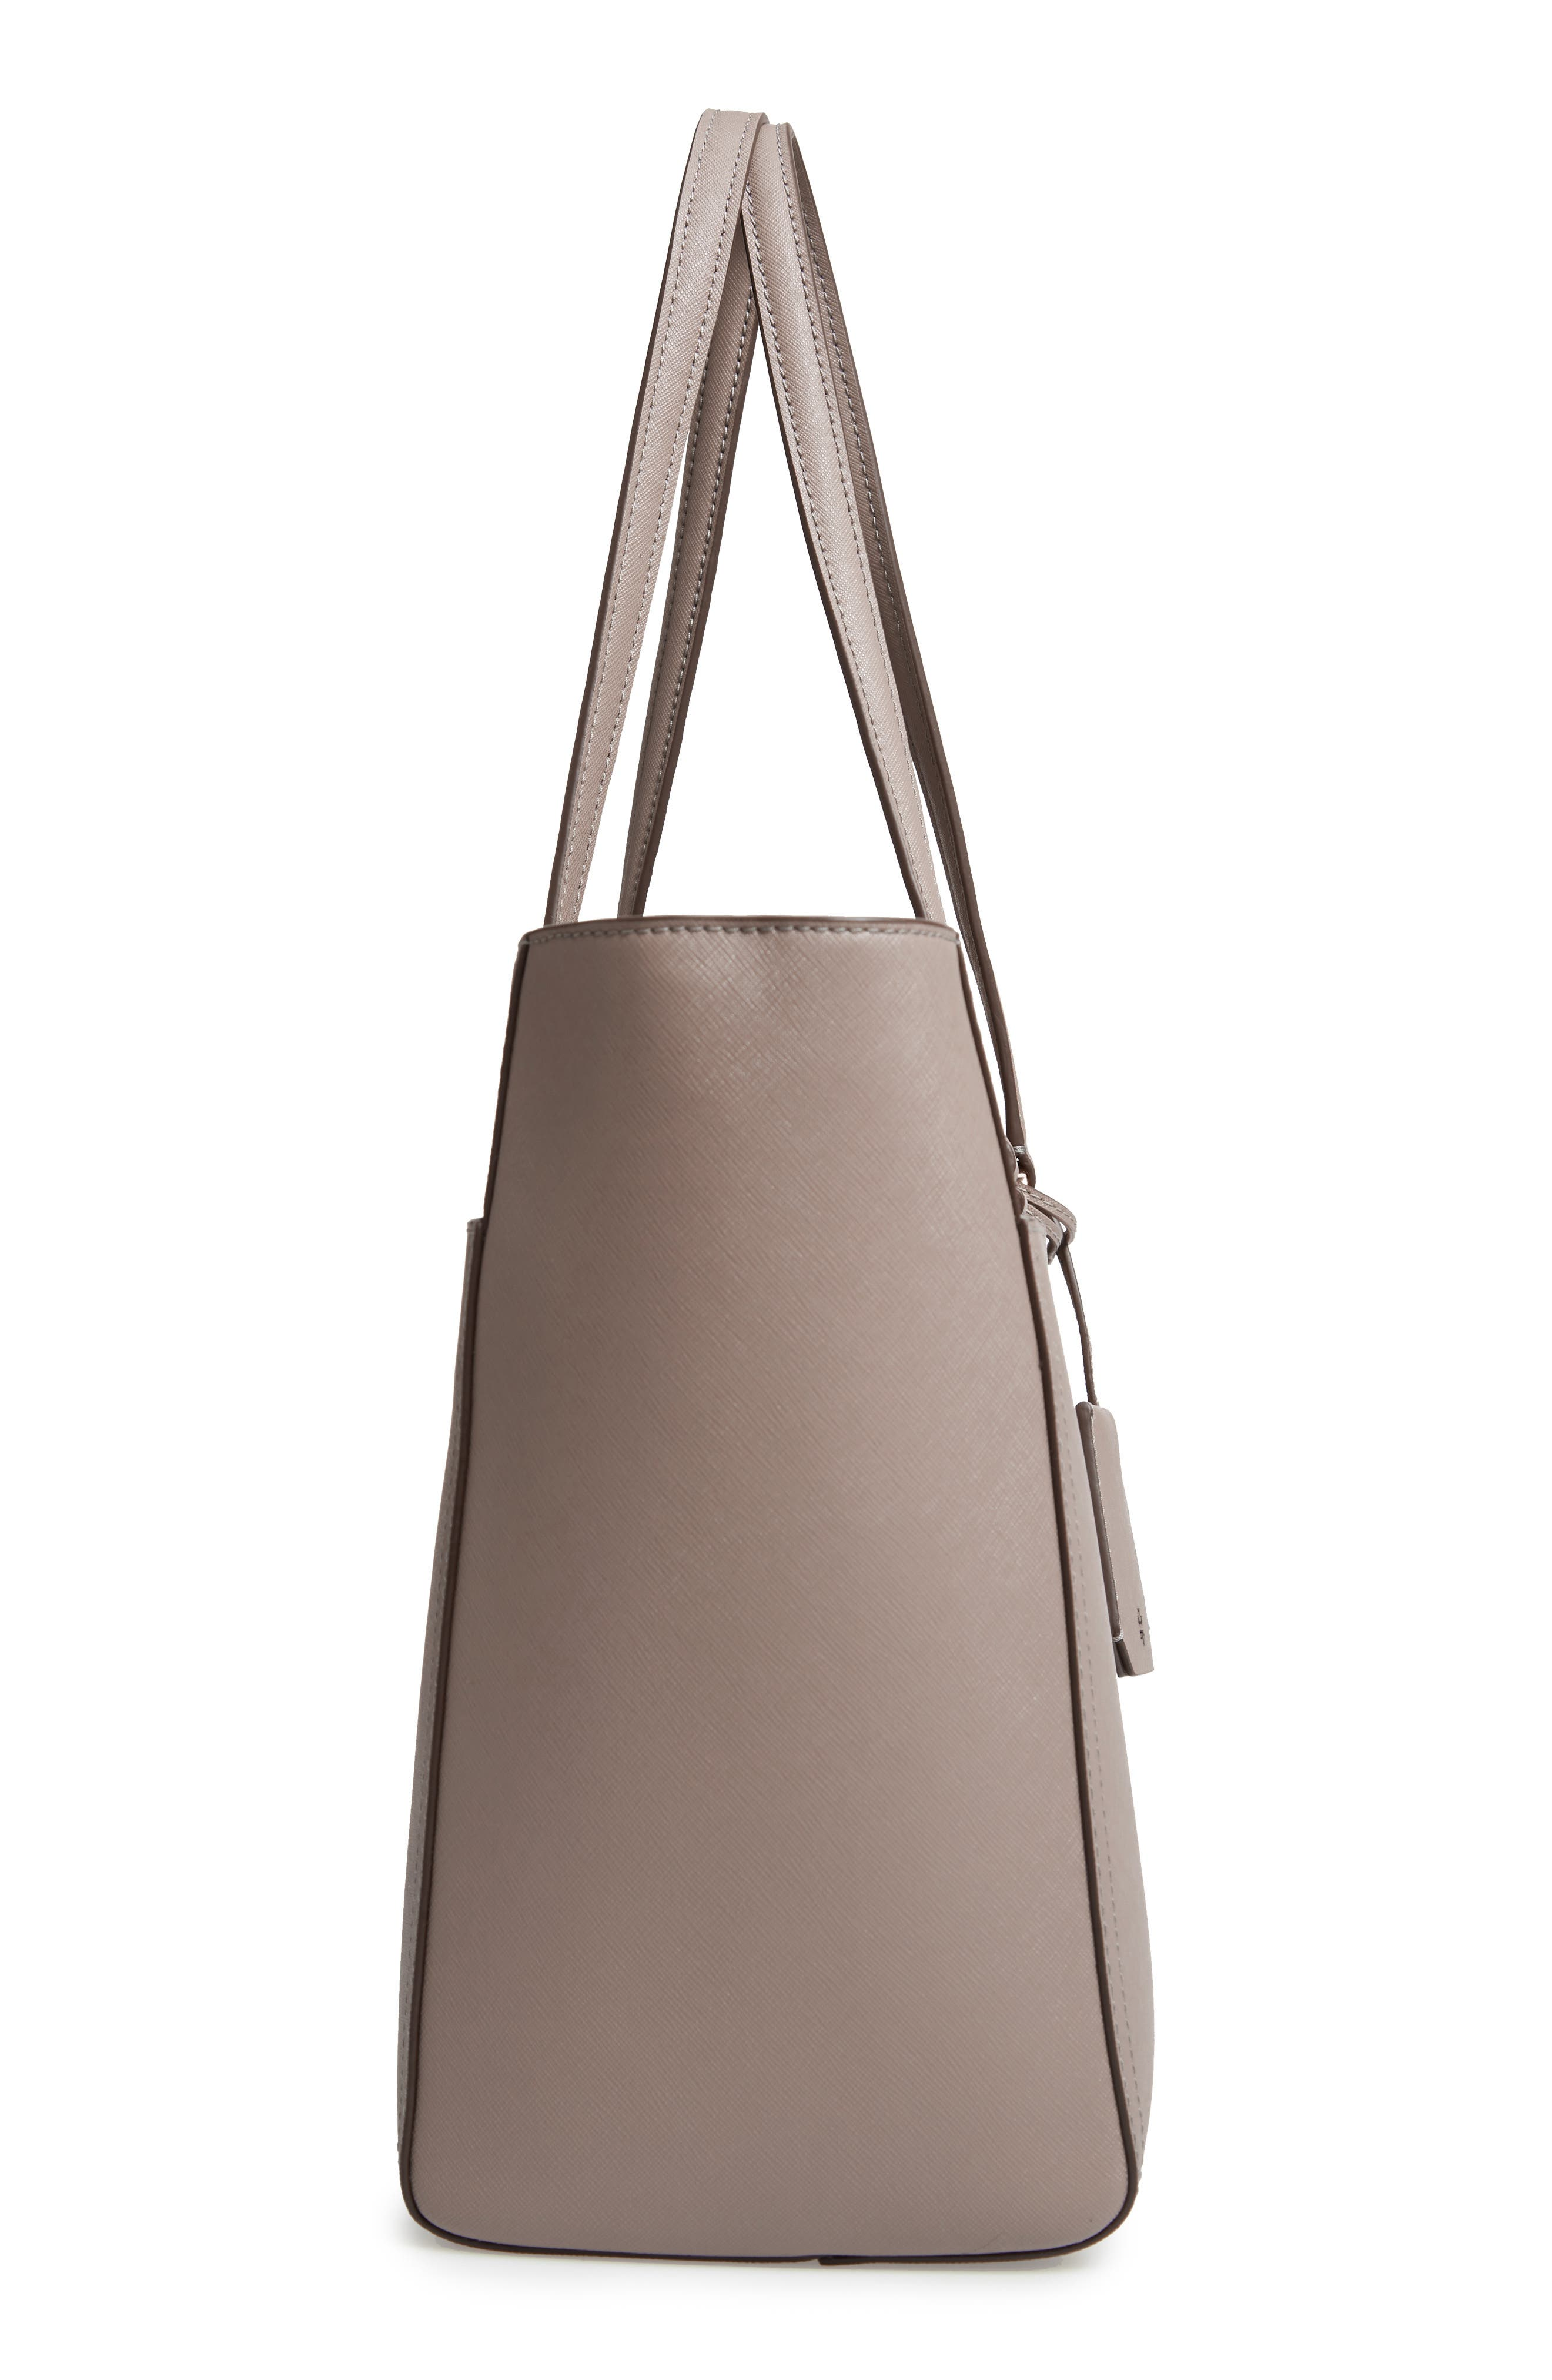 TORY BURCH, Robinson Leather Tote, Alternate thumbnail 6, color, GRAY HERON